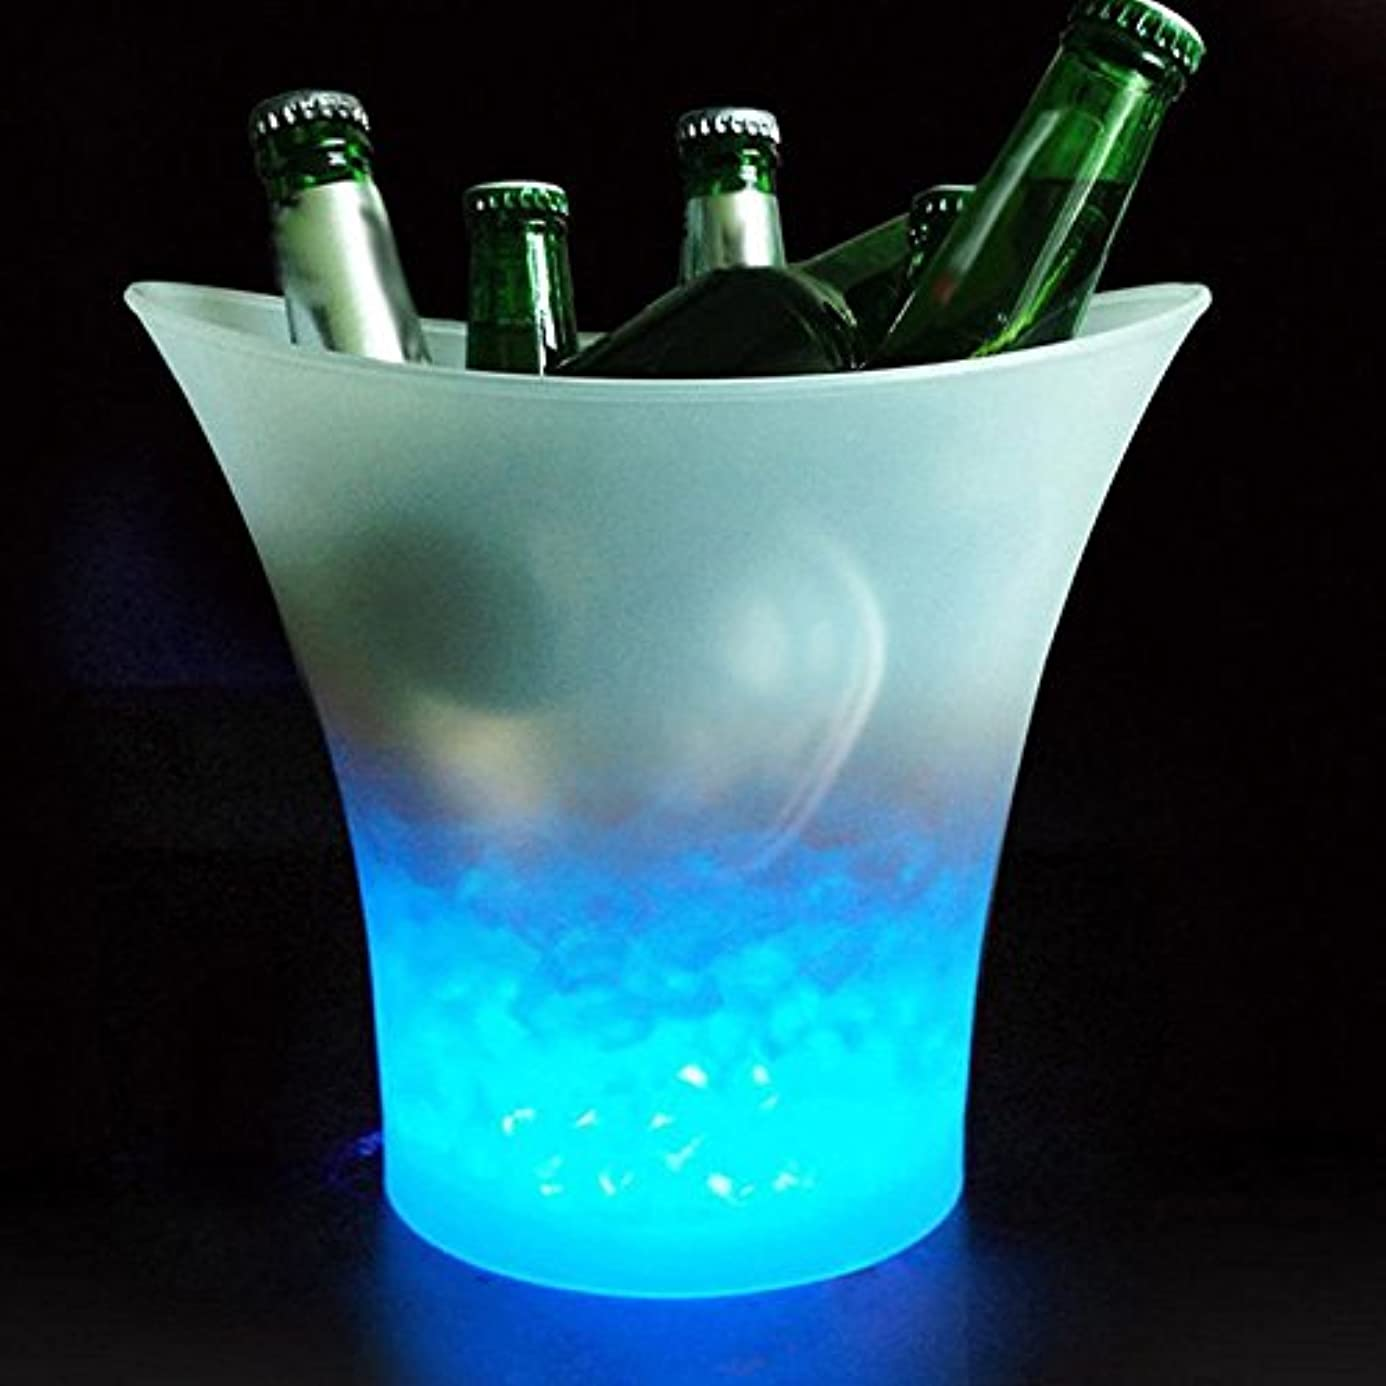 5L Glowing LED Ice Bucket Blue Light Champagne Wine Drink Beer Ice Cooler for KTV Party Bar cmr9744787